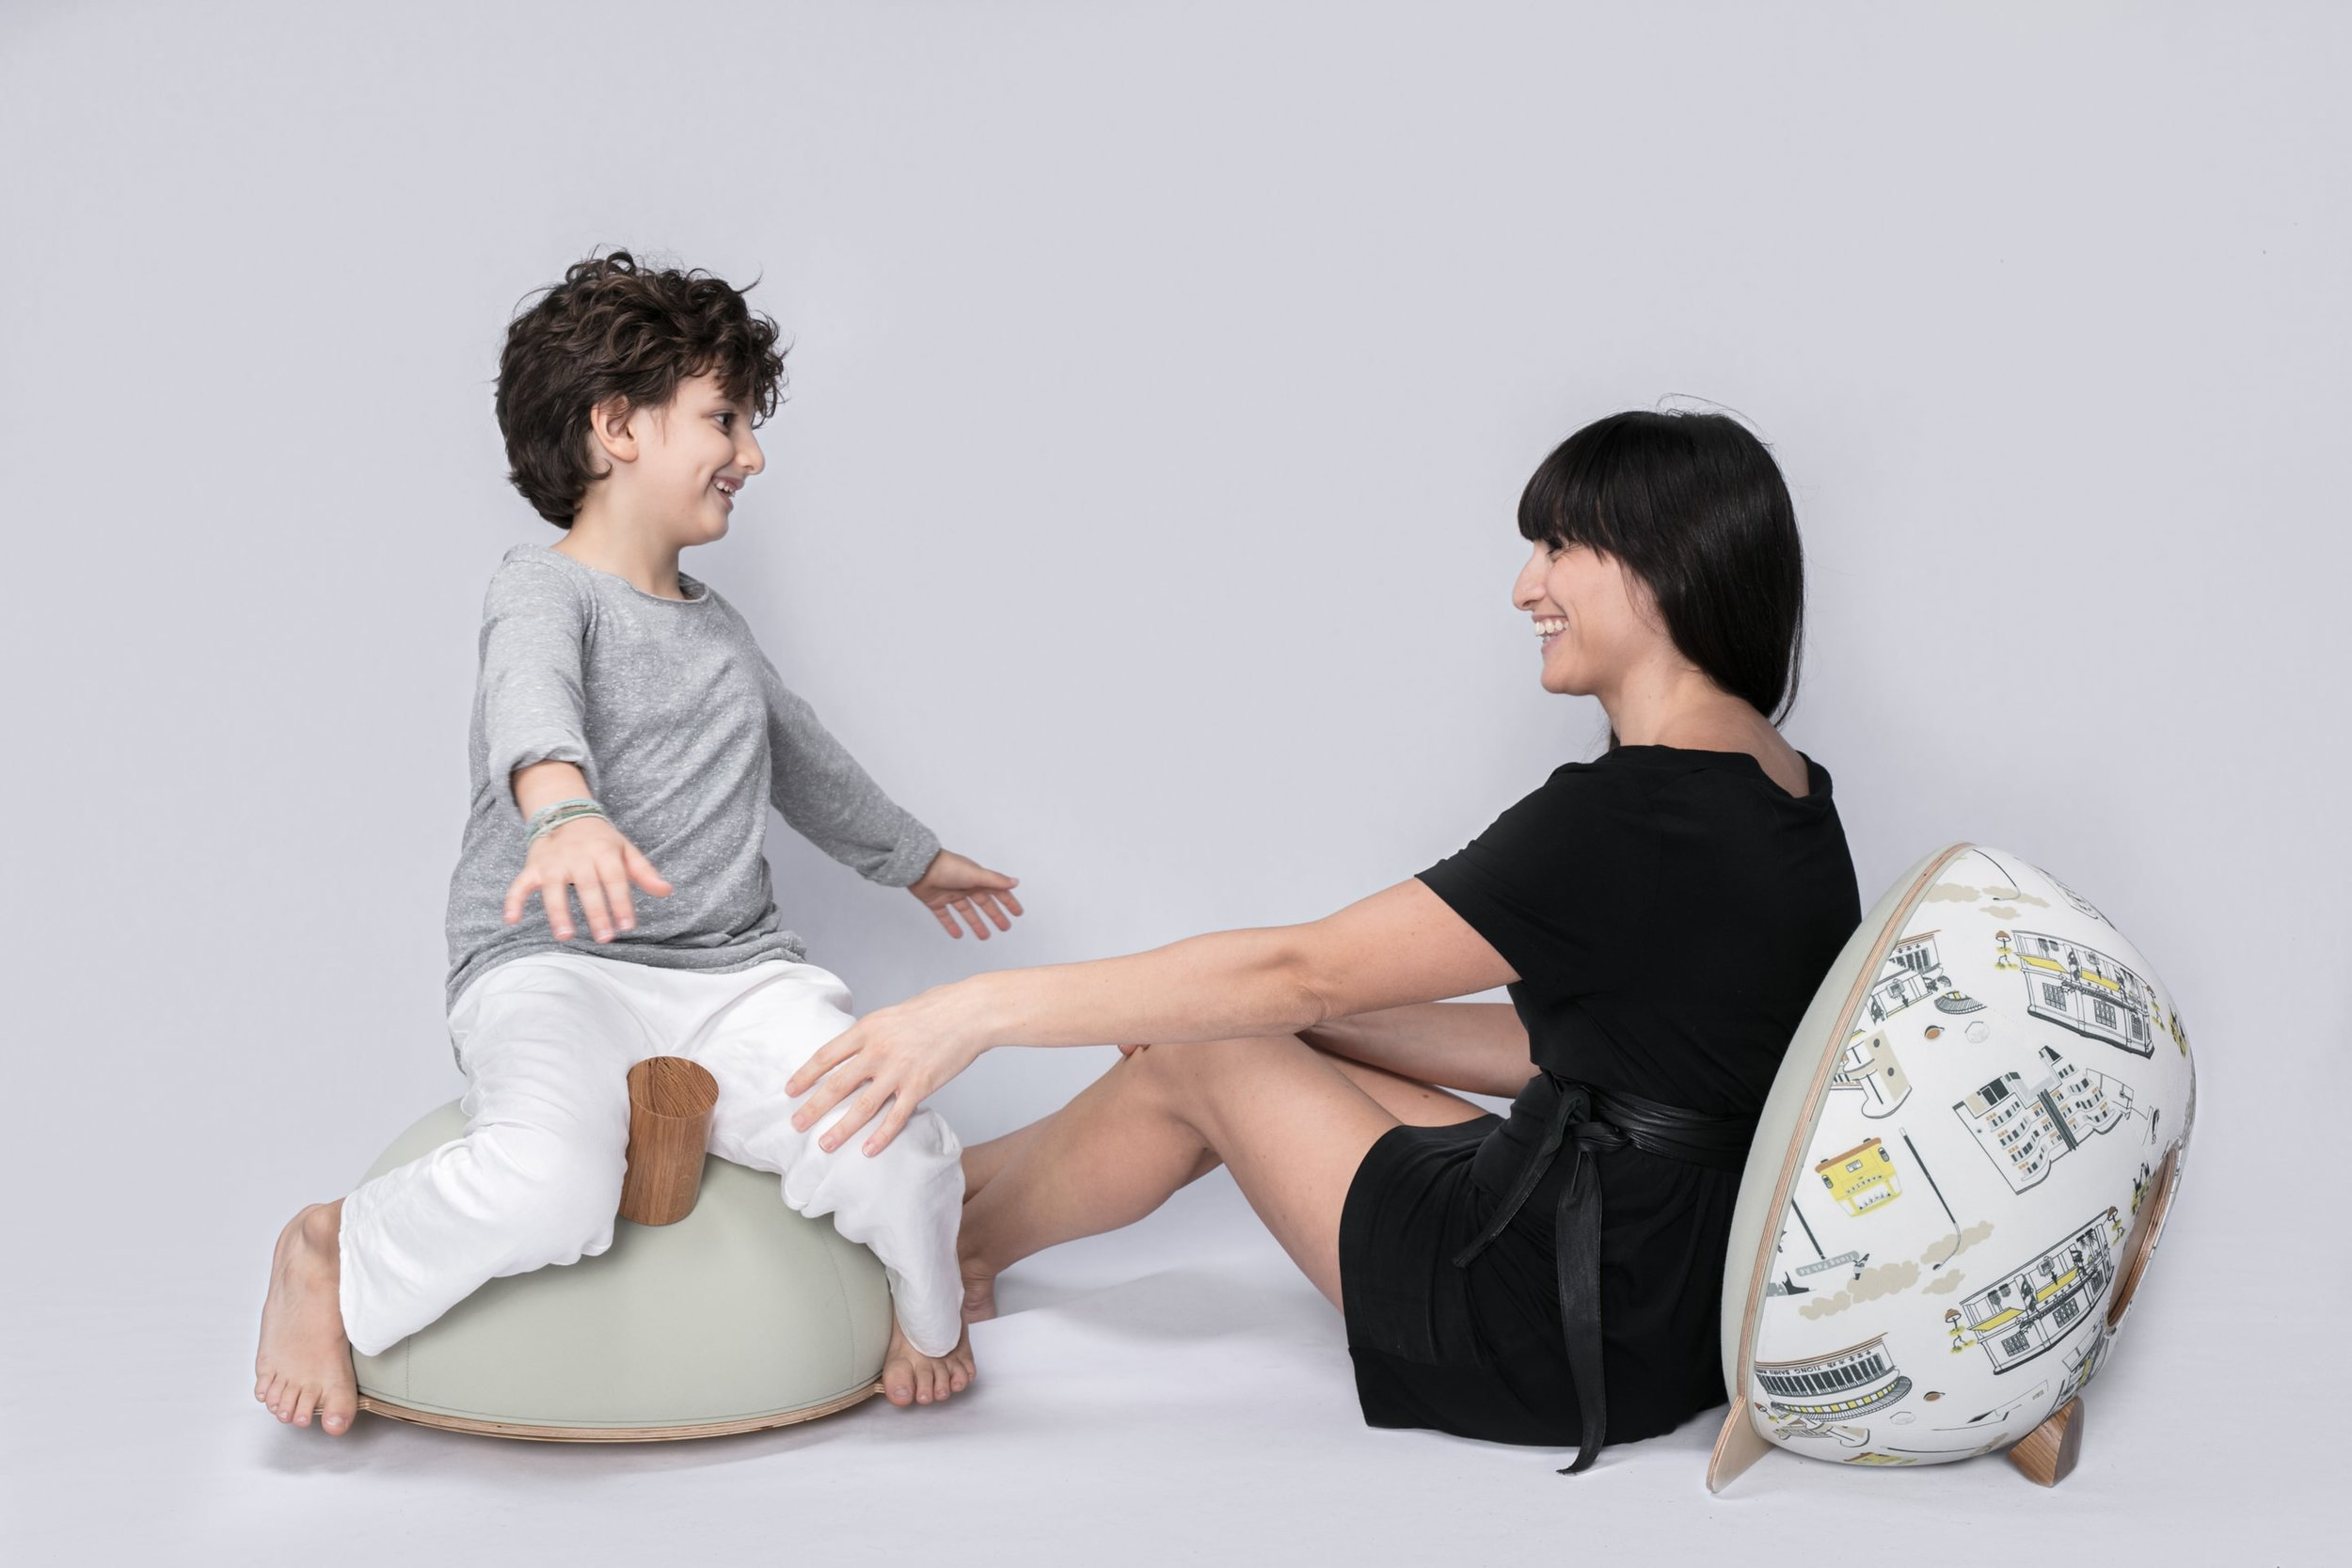 Moda Design Pouf.Modudesigners Adaptable And Flexible Home Furniture Design